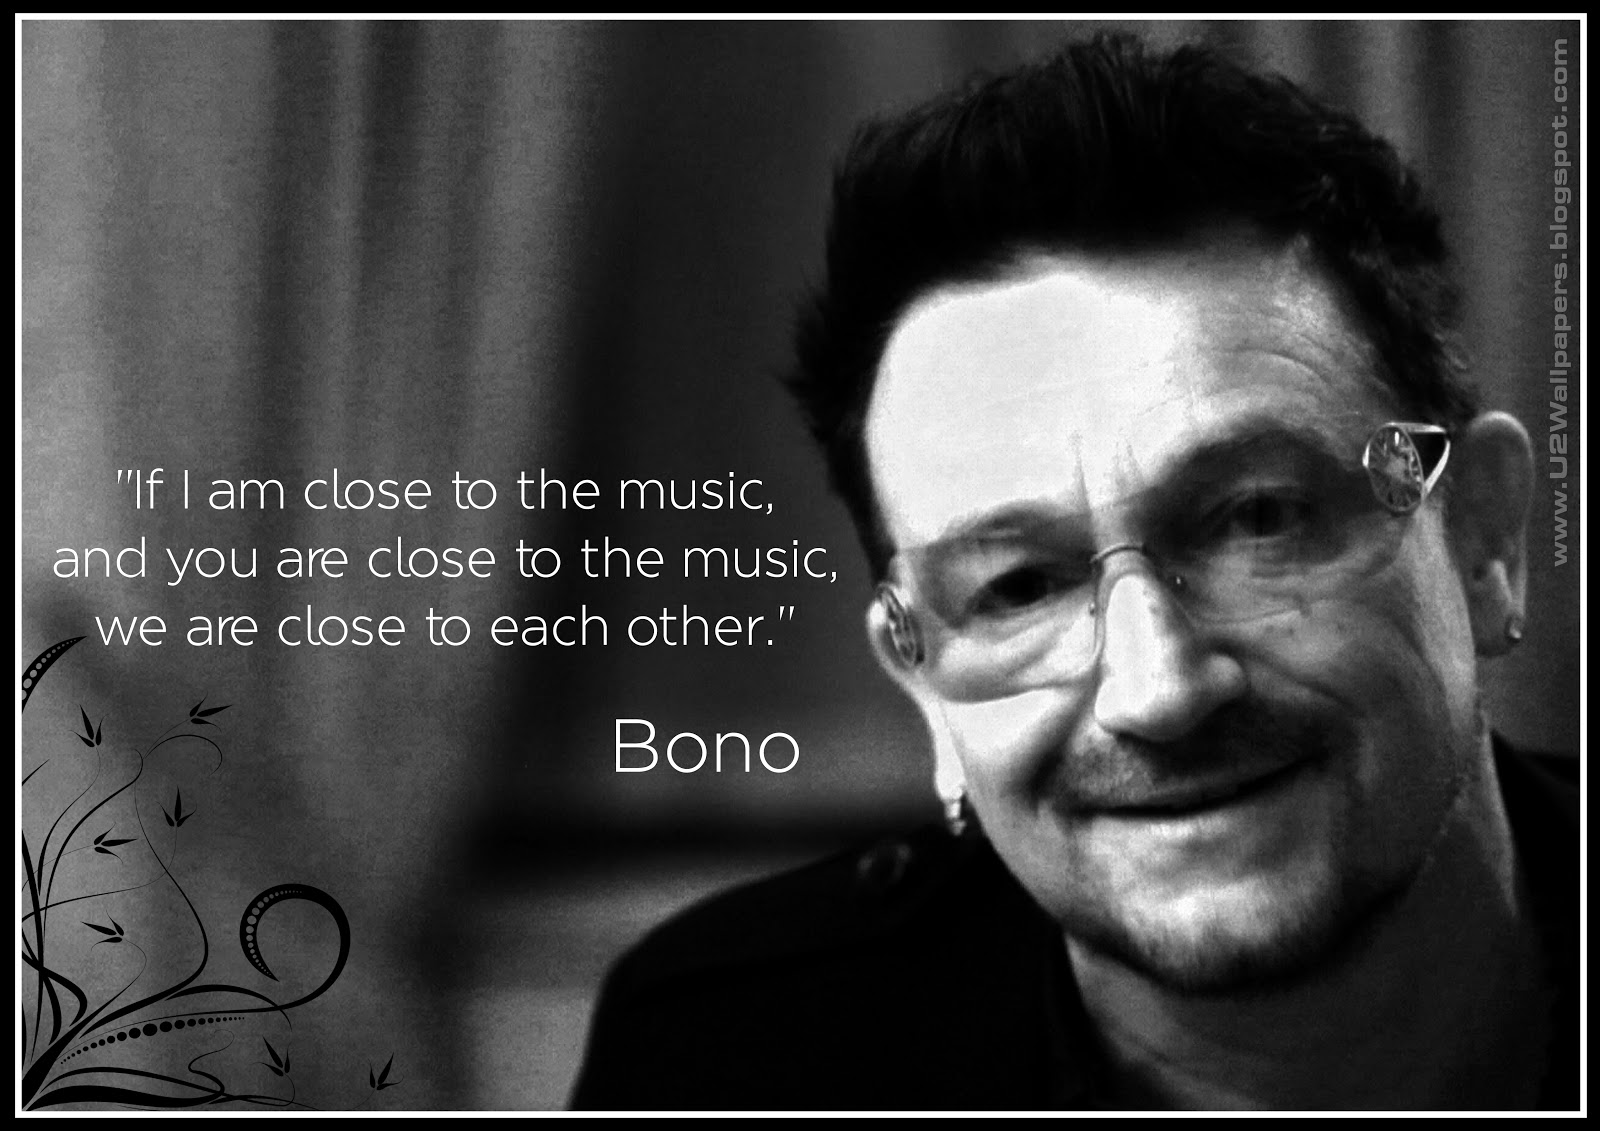 7 Of The Most Annoying Things Bono Has Ever Said Or Done